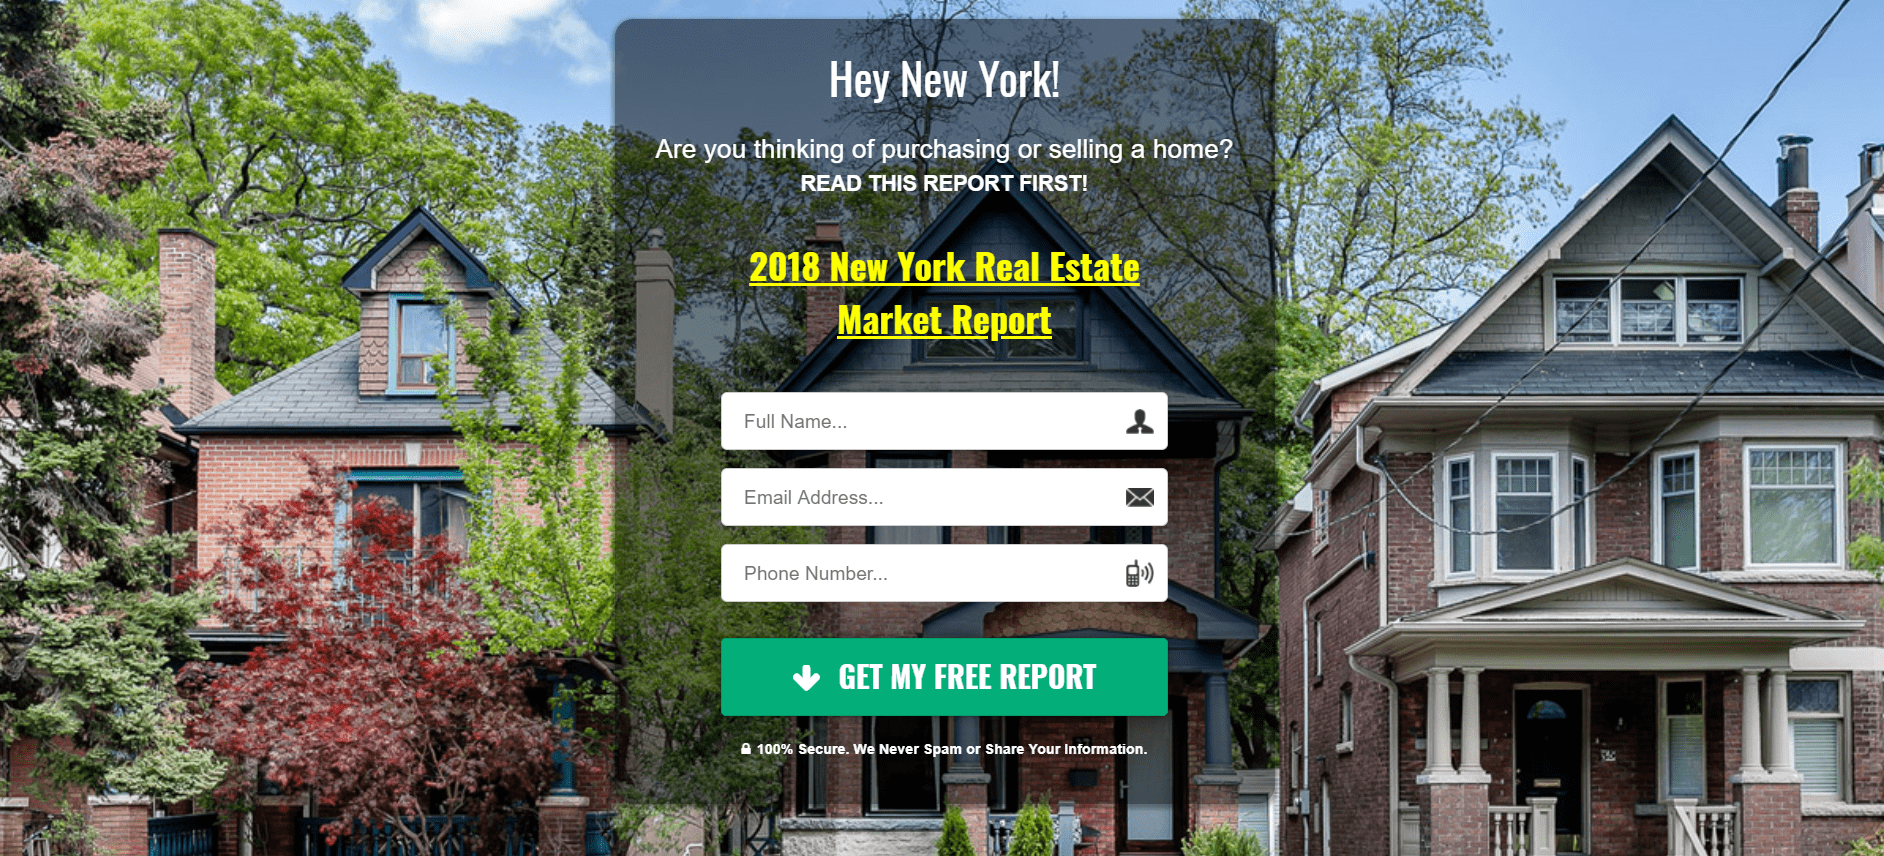 screenshot of real estate landing page with houses in background